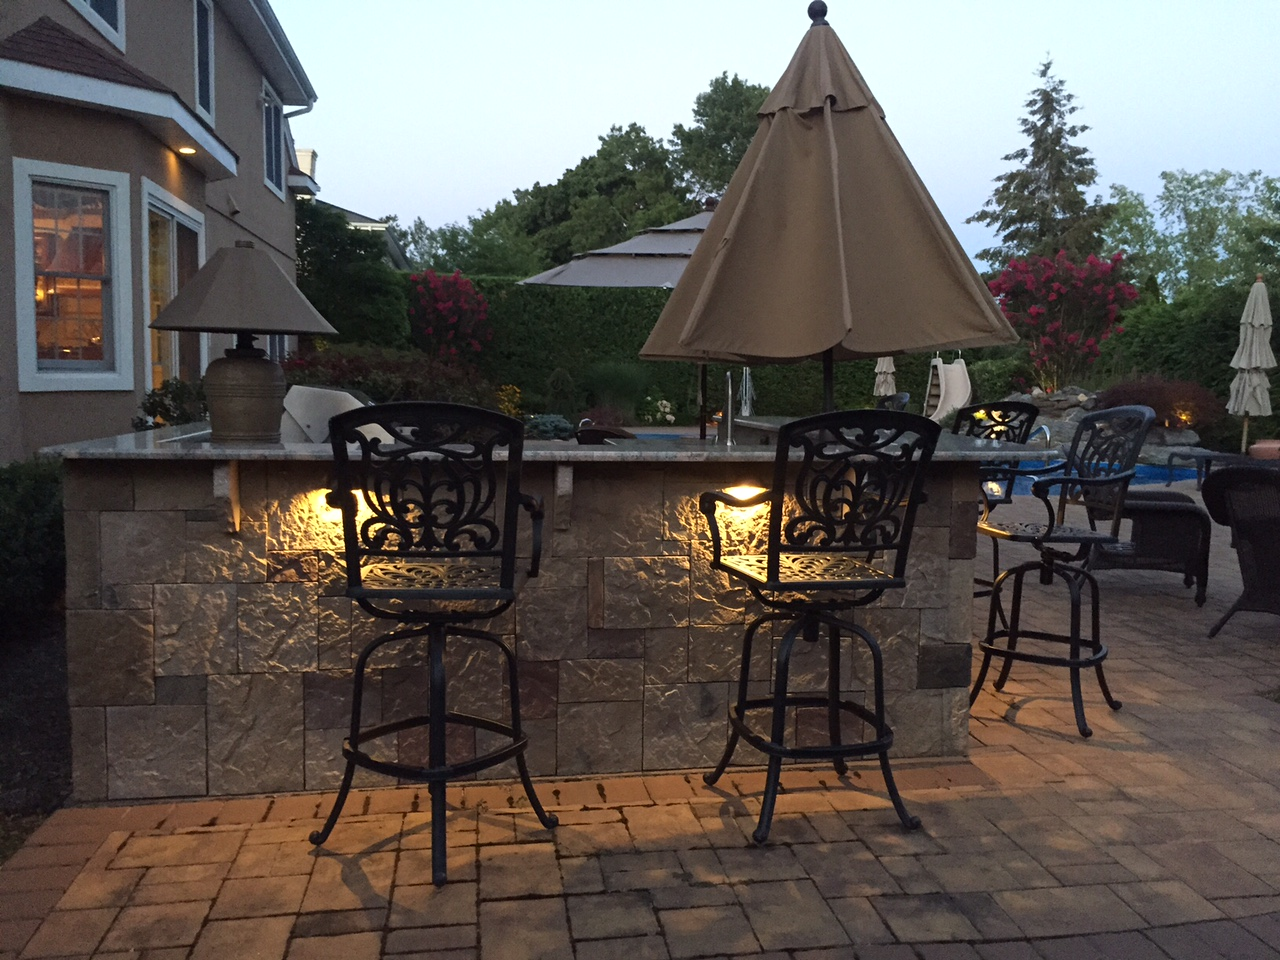 At Outdoor Lighting Perspectives Of North Houston, Weu0027ve Got You Covered.  We Offer Stunning LED Patio Lighting To Fit Your Exact Lifestyle Goals.